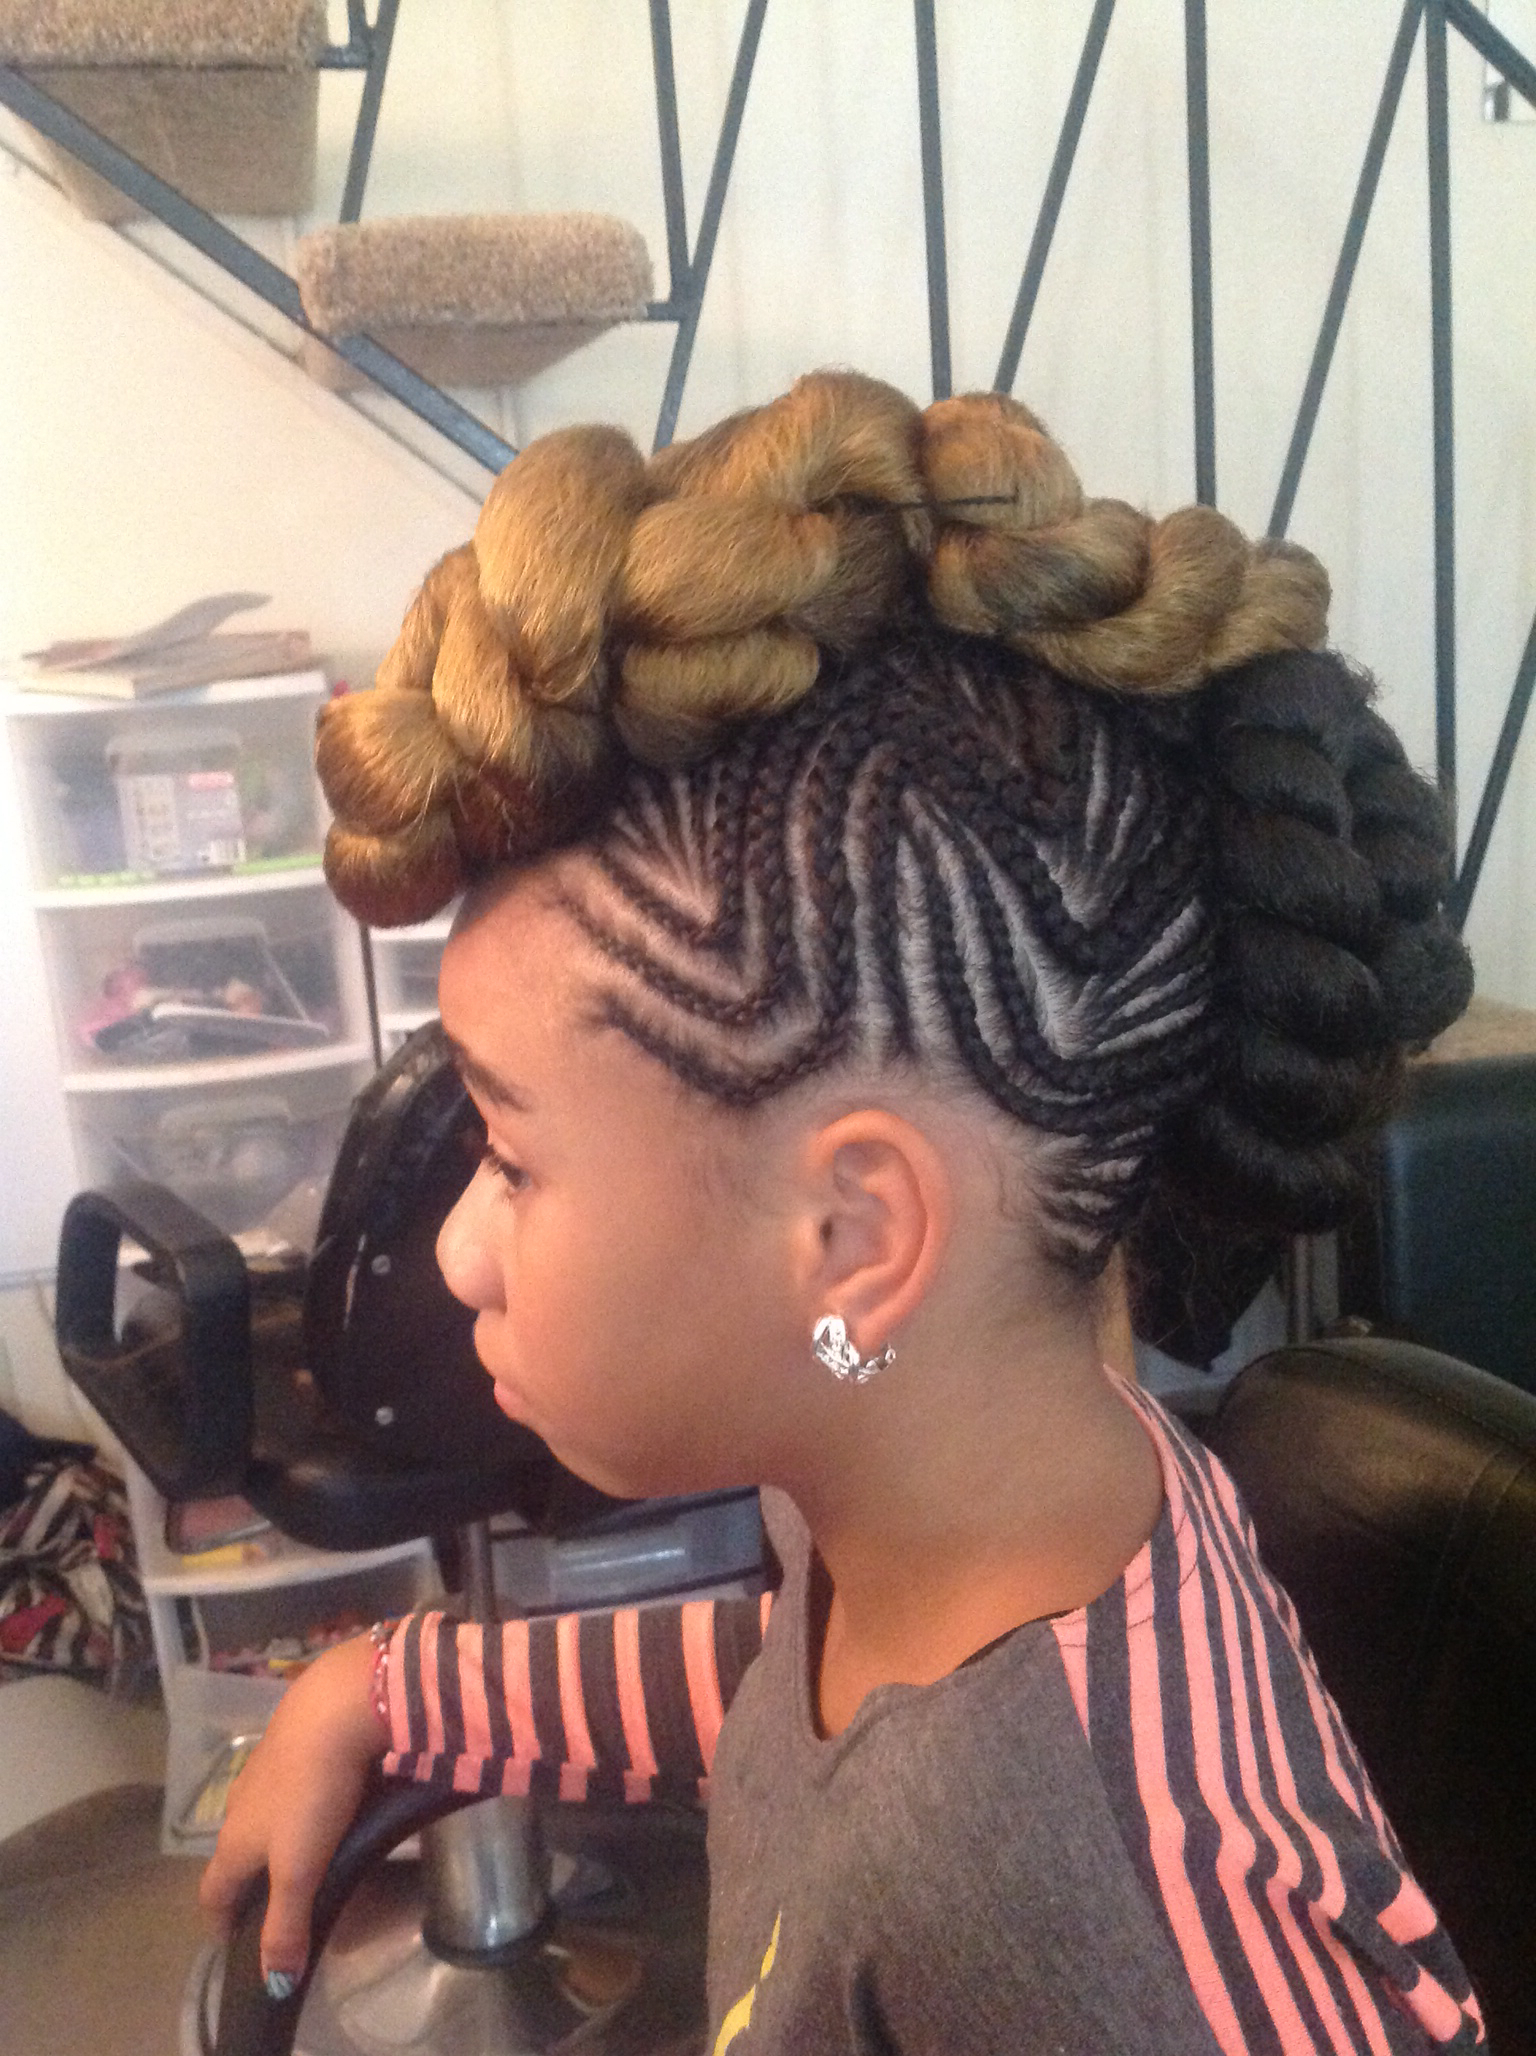 15 Foremost Braided Mohawk Hairstyles – Mohawk With Braids In Preferred Small Braids Mohawk Hairstyles (Gallery 5 of 20)